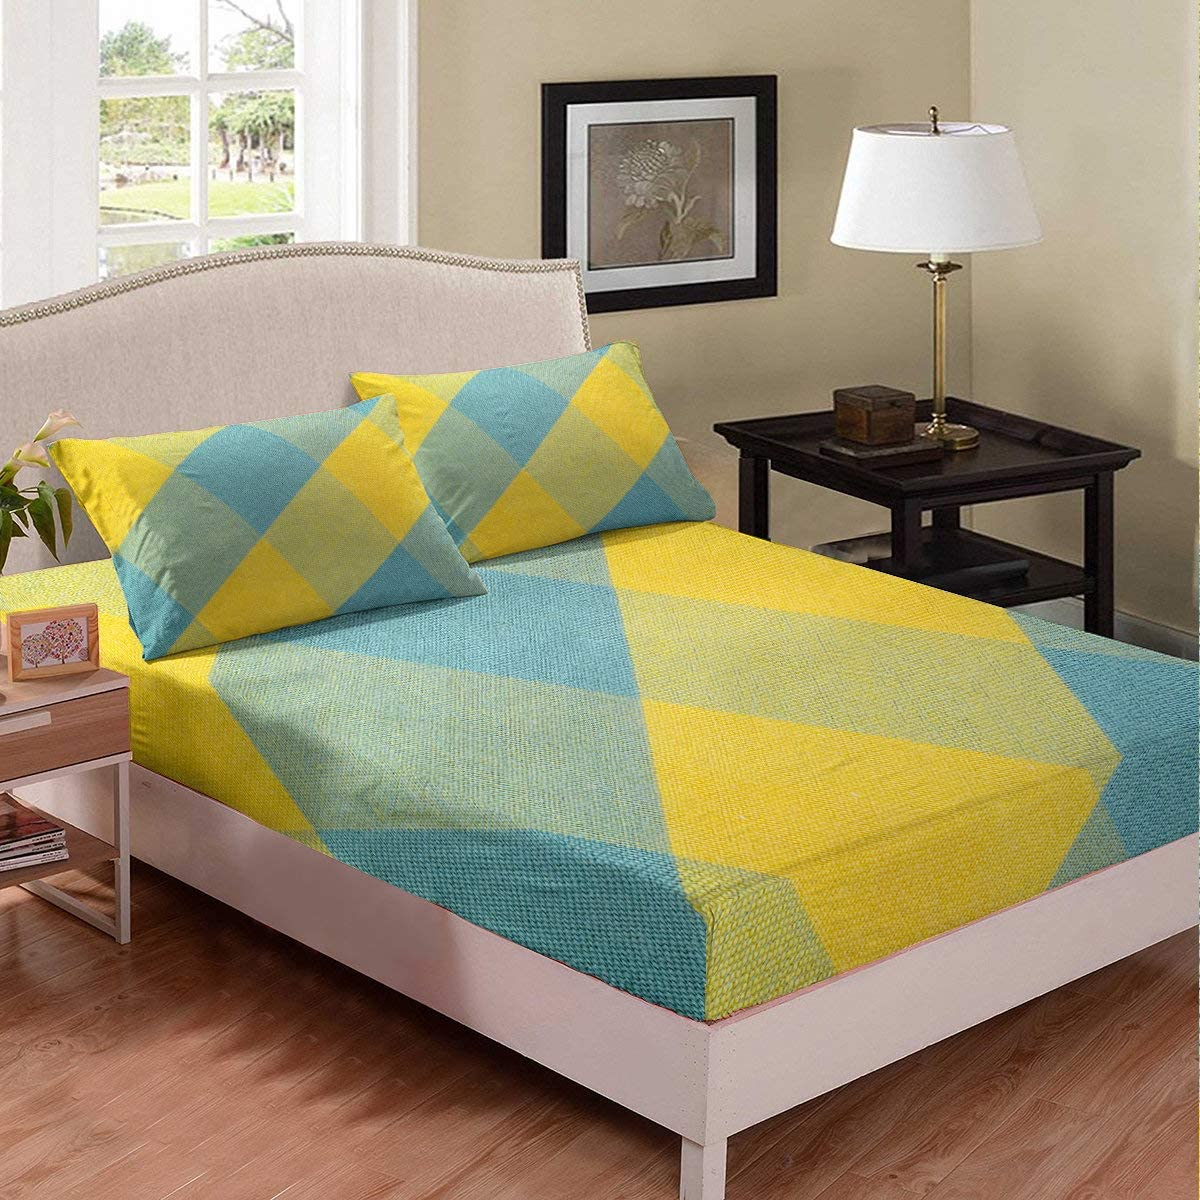 Geometric Fitted Sheet Diamond Pattern Sheet Set Teal Yellow Stain Resistant Bedding Set For Kids Teens Boys Girls Cozy Lightweight Bedroom Decor Full Size 1 Fitted Sheet With 2 Pillow Cases